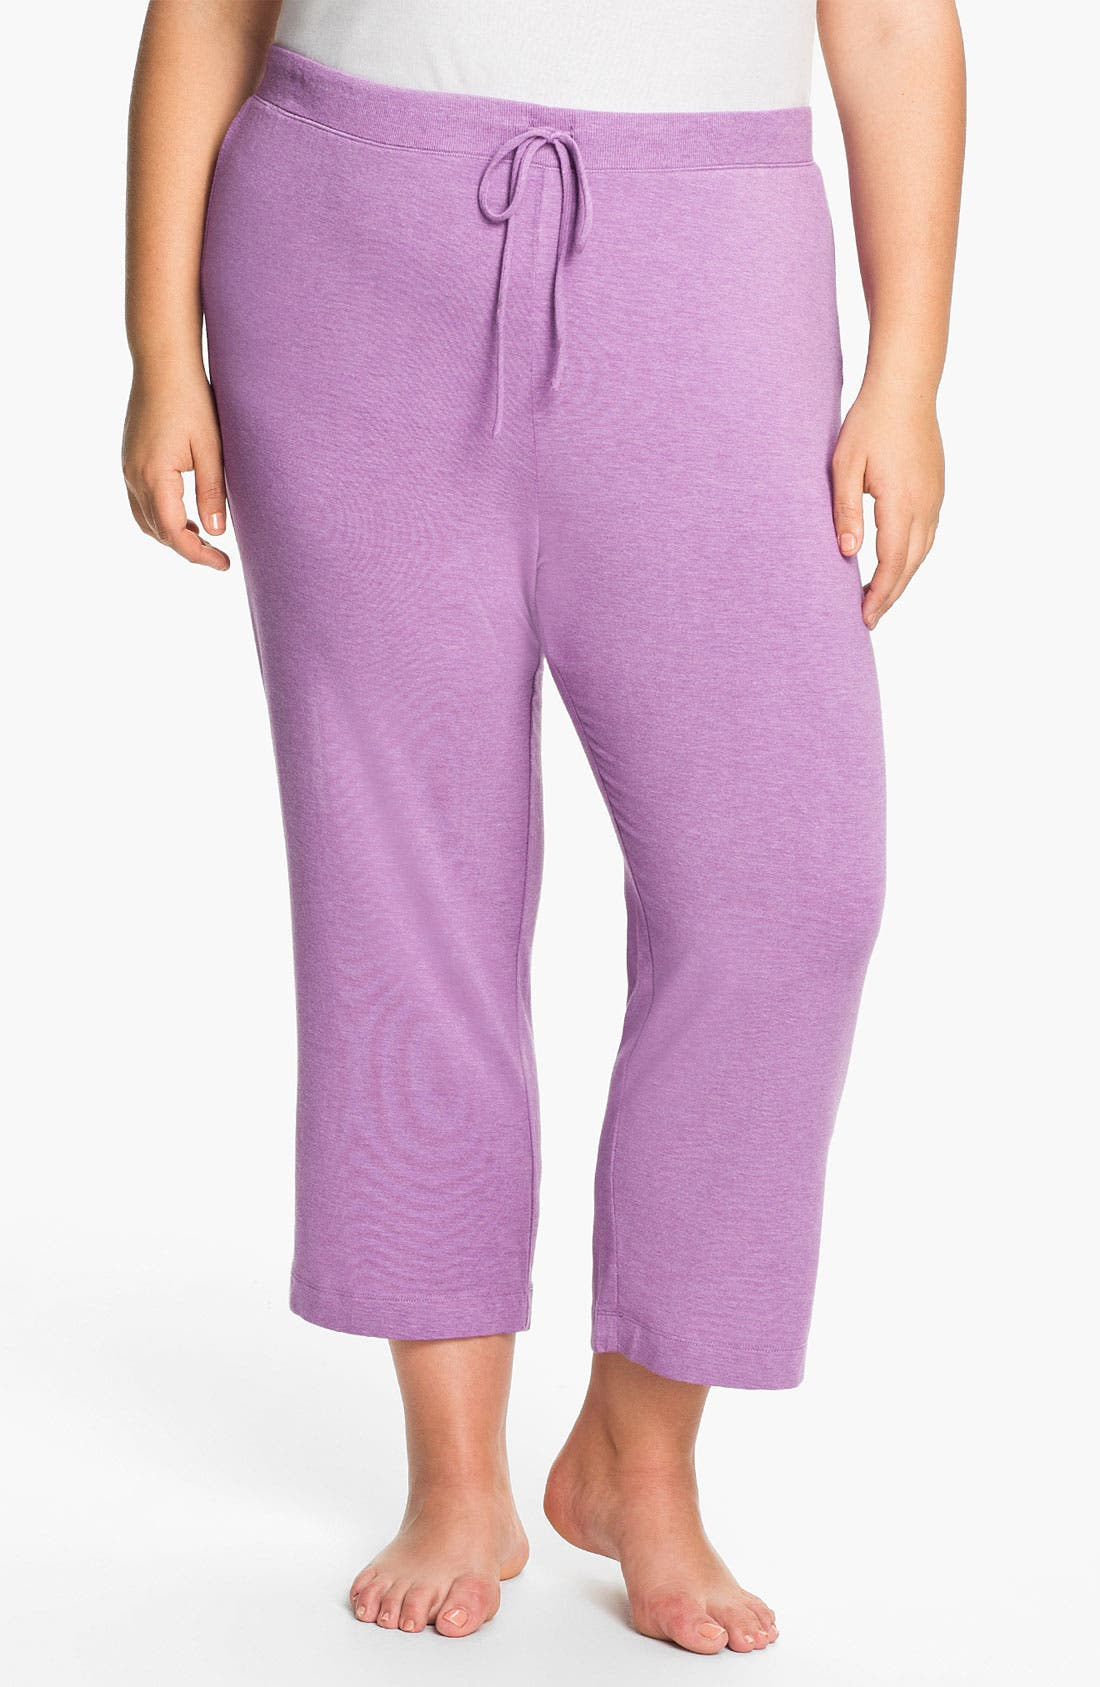 Main Image - DKNY '7 Easy Pieces' Capri Pants (Plus Size)